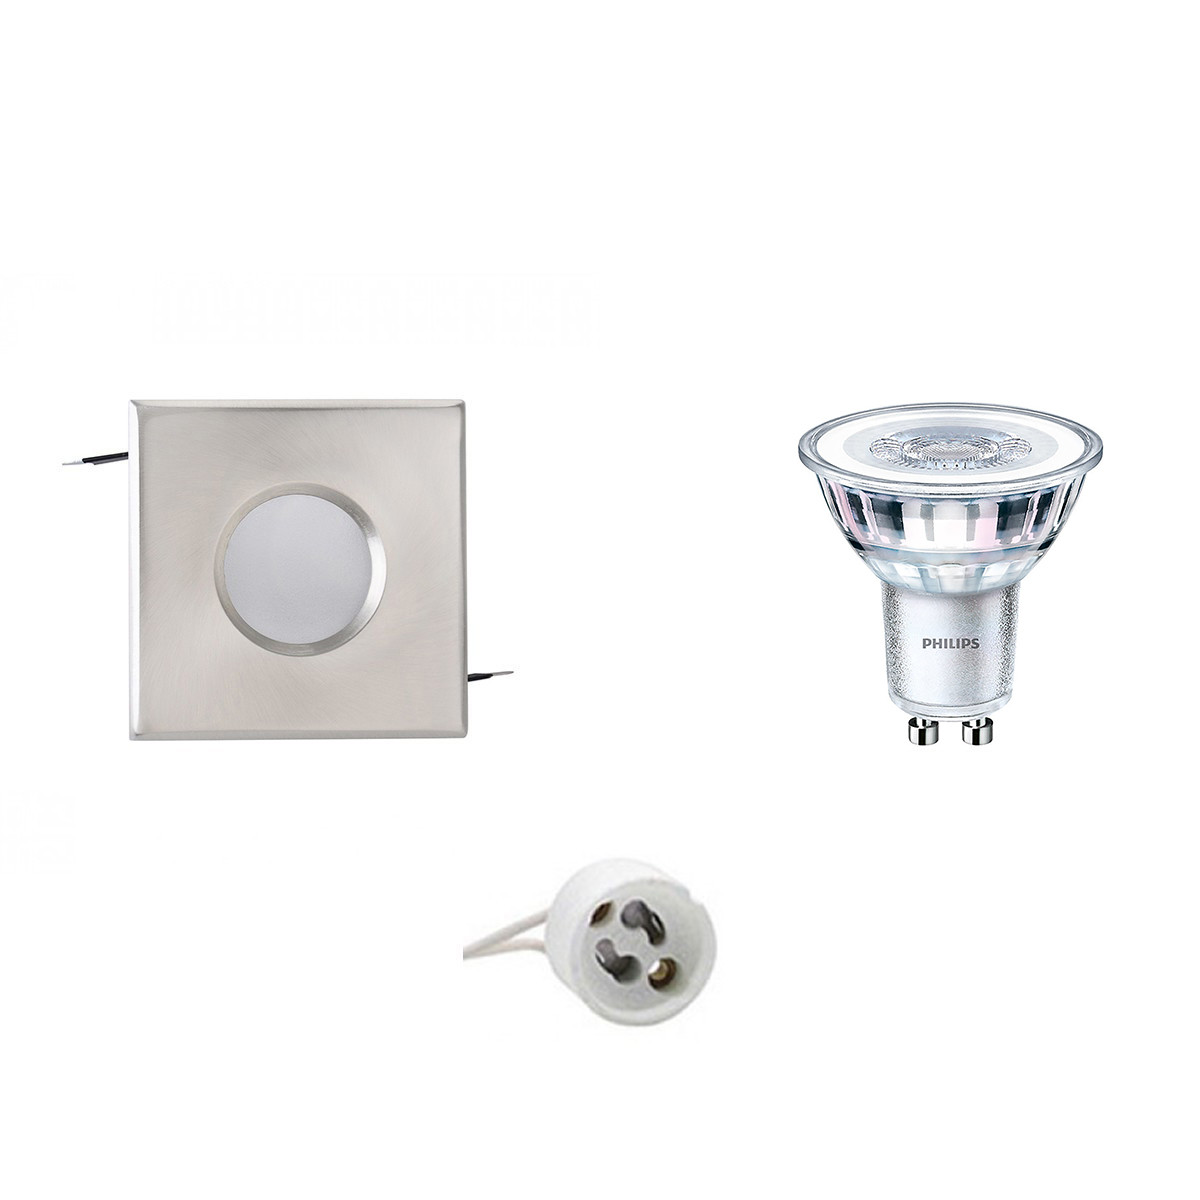 PHILIPS - LED Spot Set - CorePro 840 36D - GU10 Fitting - Waterdicht IP65 - Dimbaar - Inbouw Vierkan